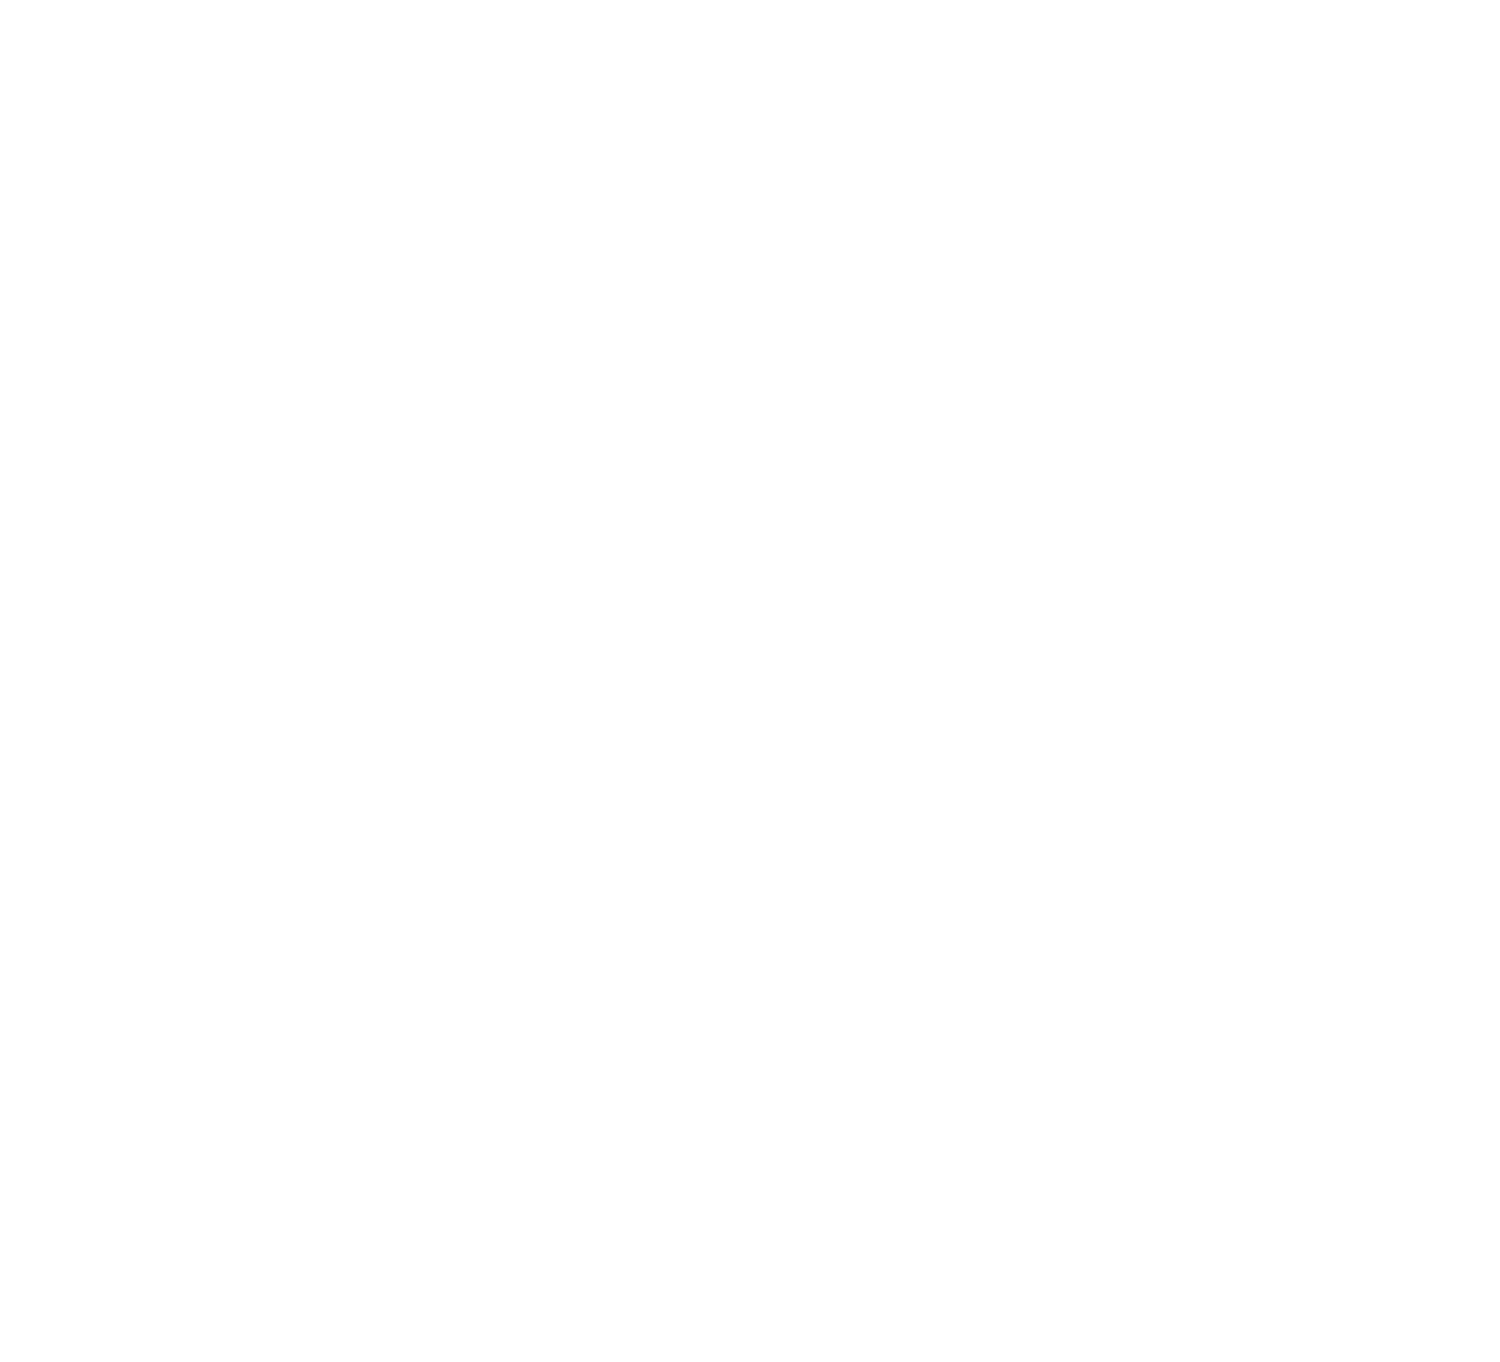 Angela Marc Salon